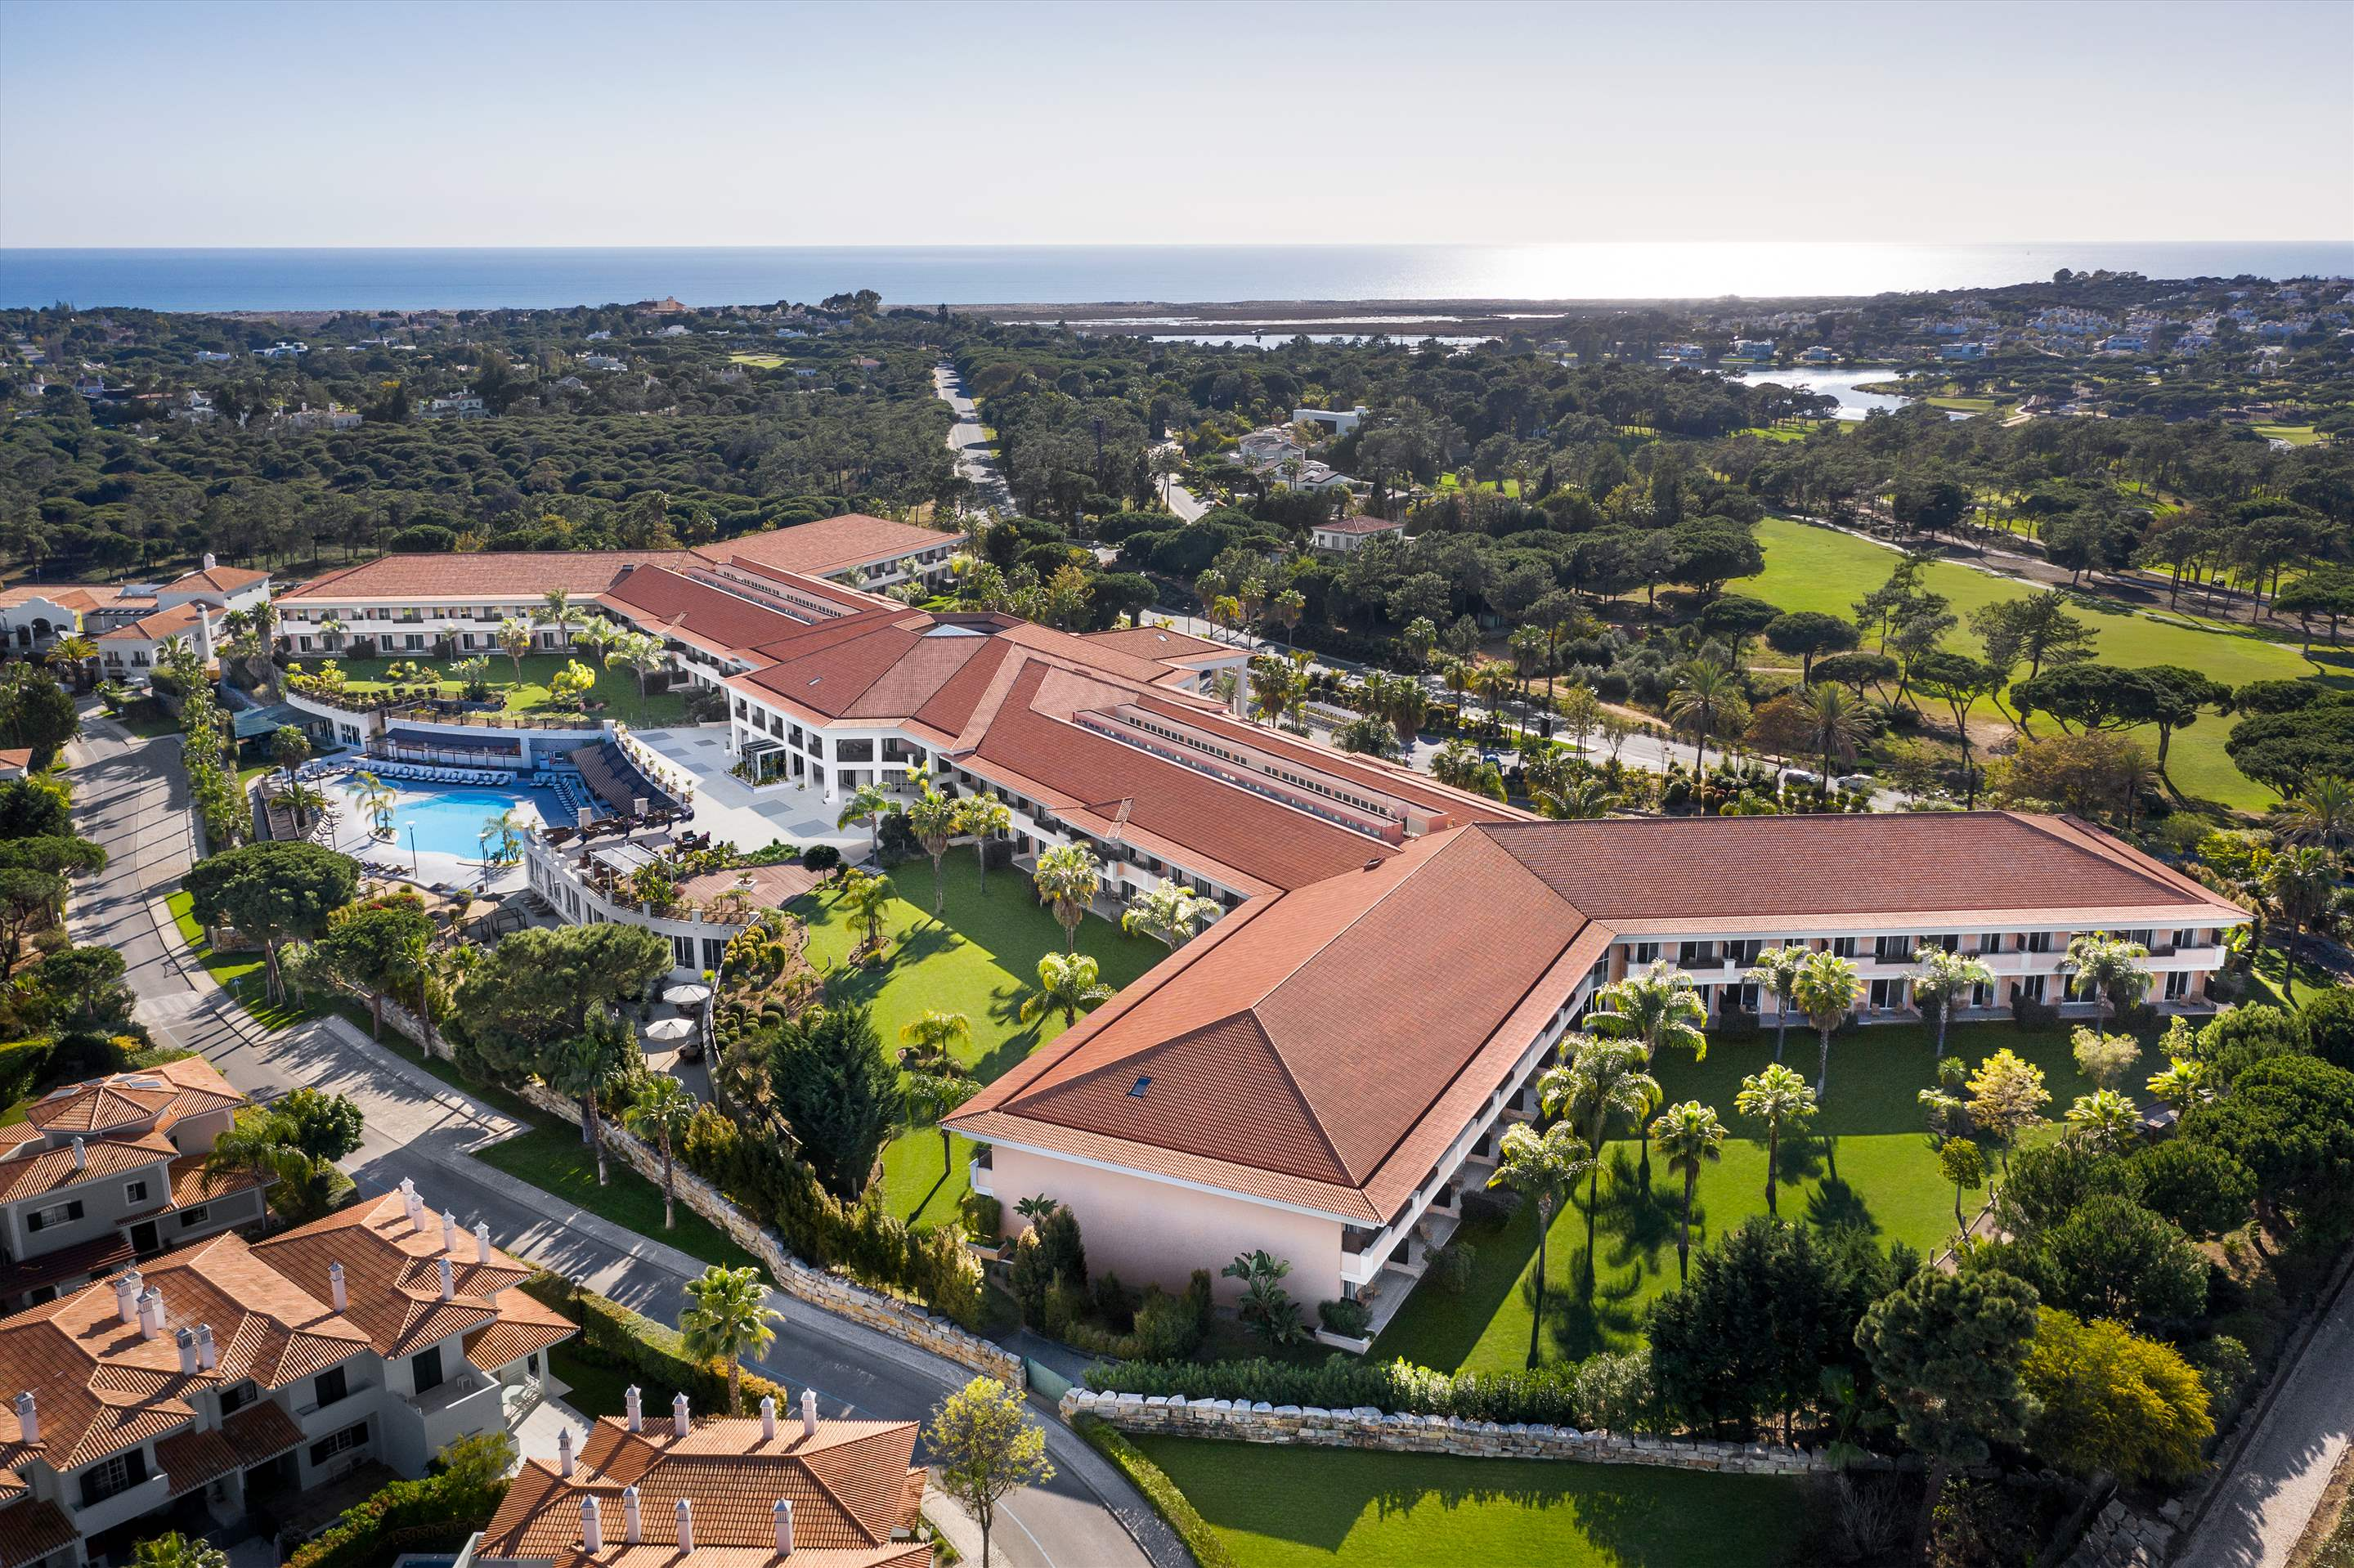 Wyndham Grand Algarve 1 Bedroom, Deluxe Suite, Pool Side ,Room Only , 1 bedroom apartment in Wyndham Grand Algarve, Algarve Photo #29